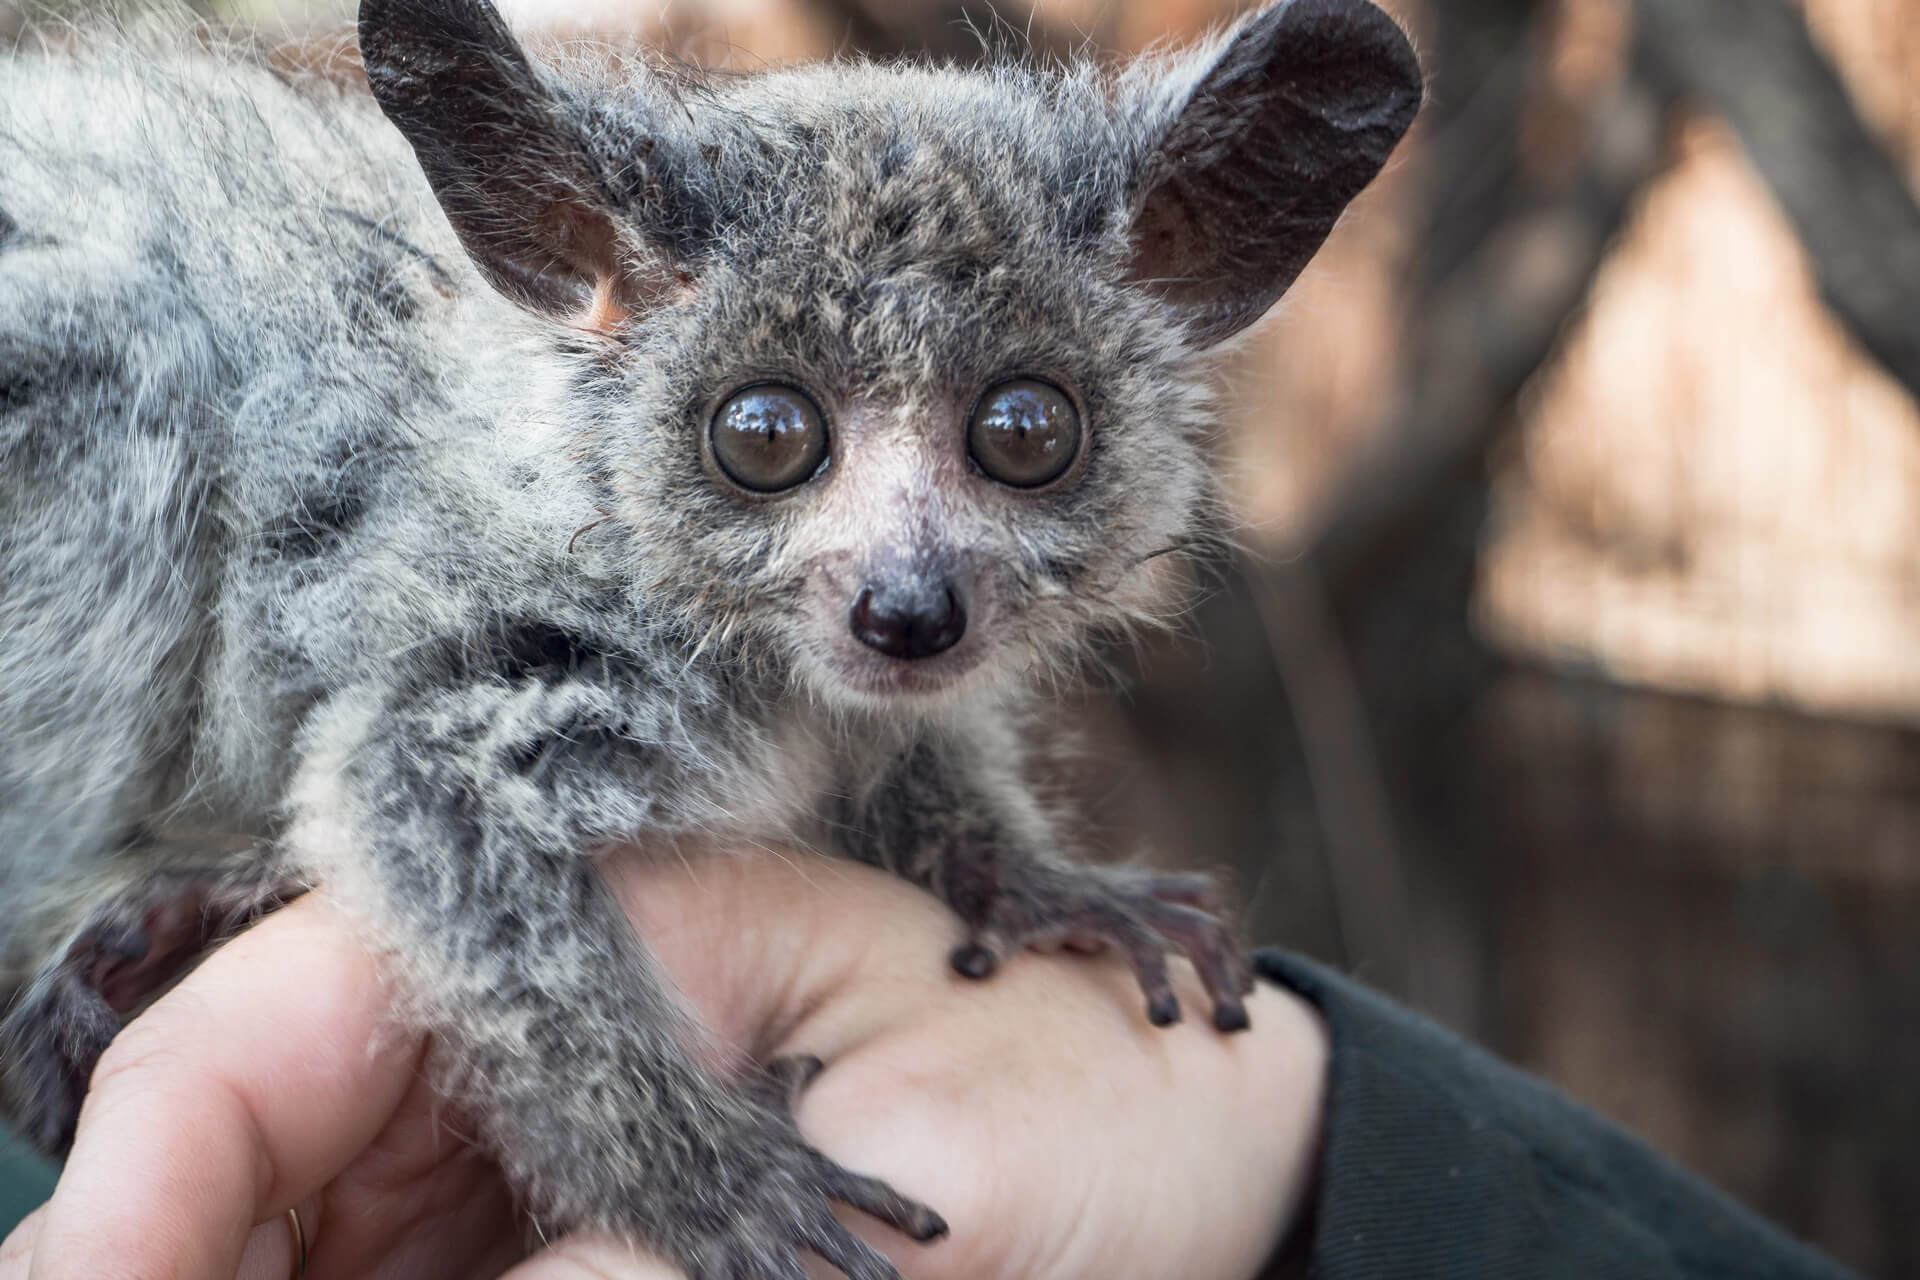 Bushbaby close-up